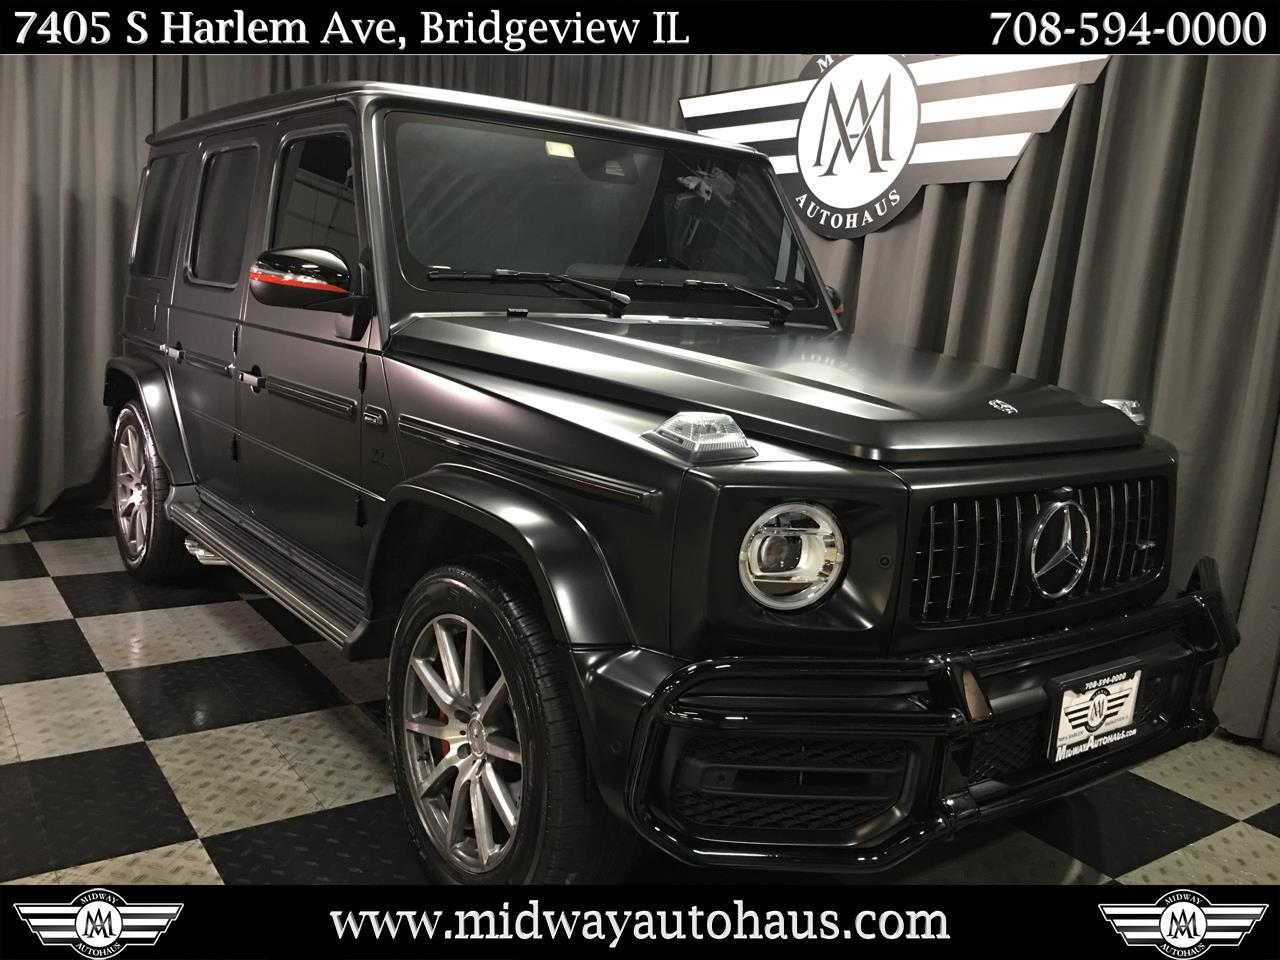 Pre-Owned 2019 Mercedes-Benz G-Class AMG® G 63 4MATIC SUV